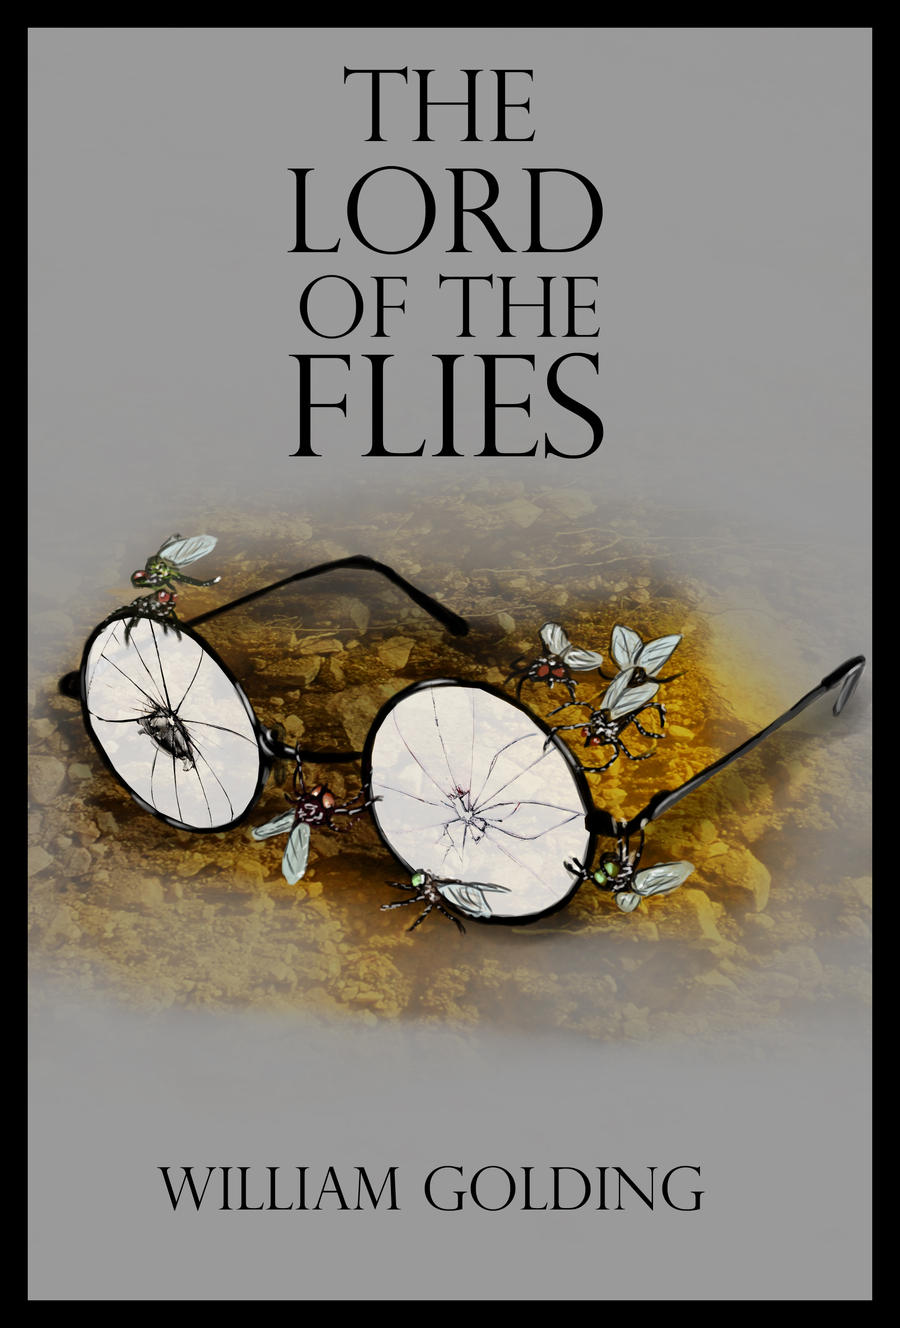 the themes of survival and the loss of innocence in lord of the flies by william golding Get an answer for 'how does golding portray the loss of innocence through symbolism in lord of the flies give examples with quotes ' and find homework.